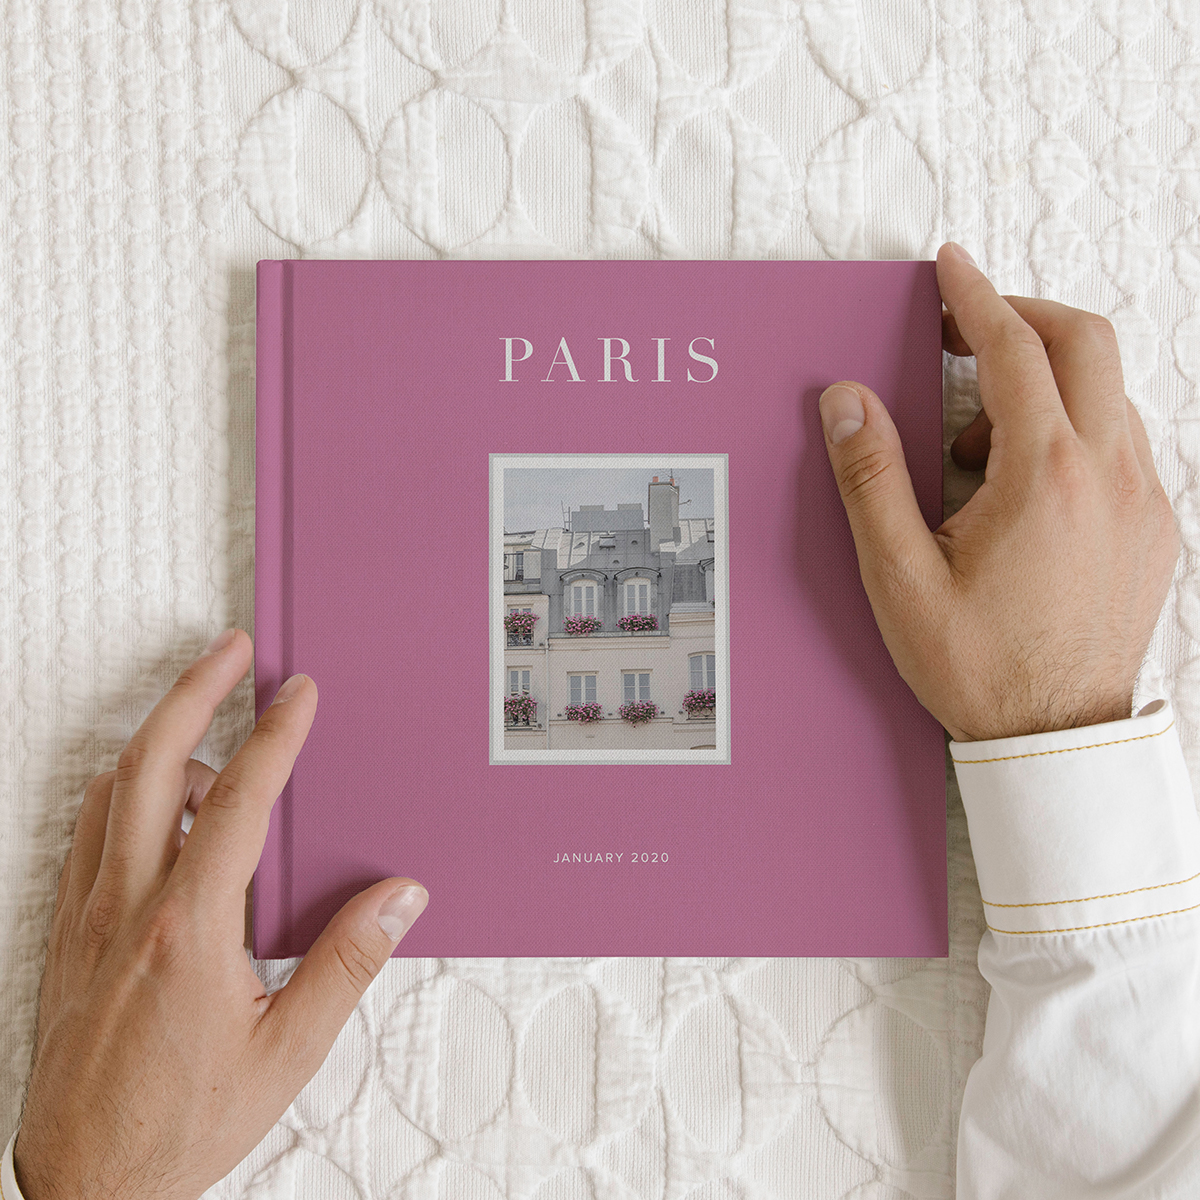 Artifact Uprising Photo-Wrapped Hardcover Book titled Paris featuring photo of Parisian architecture